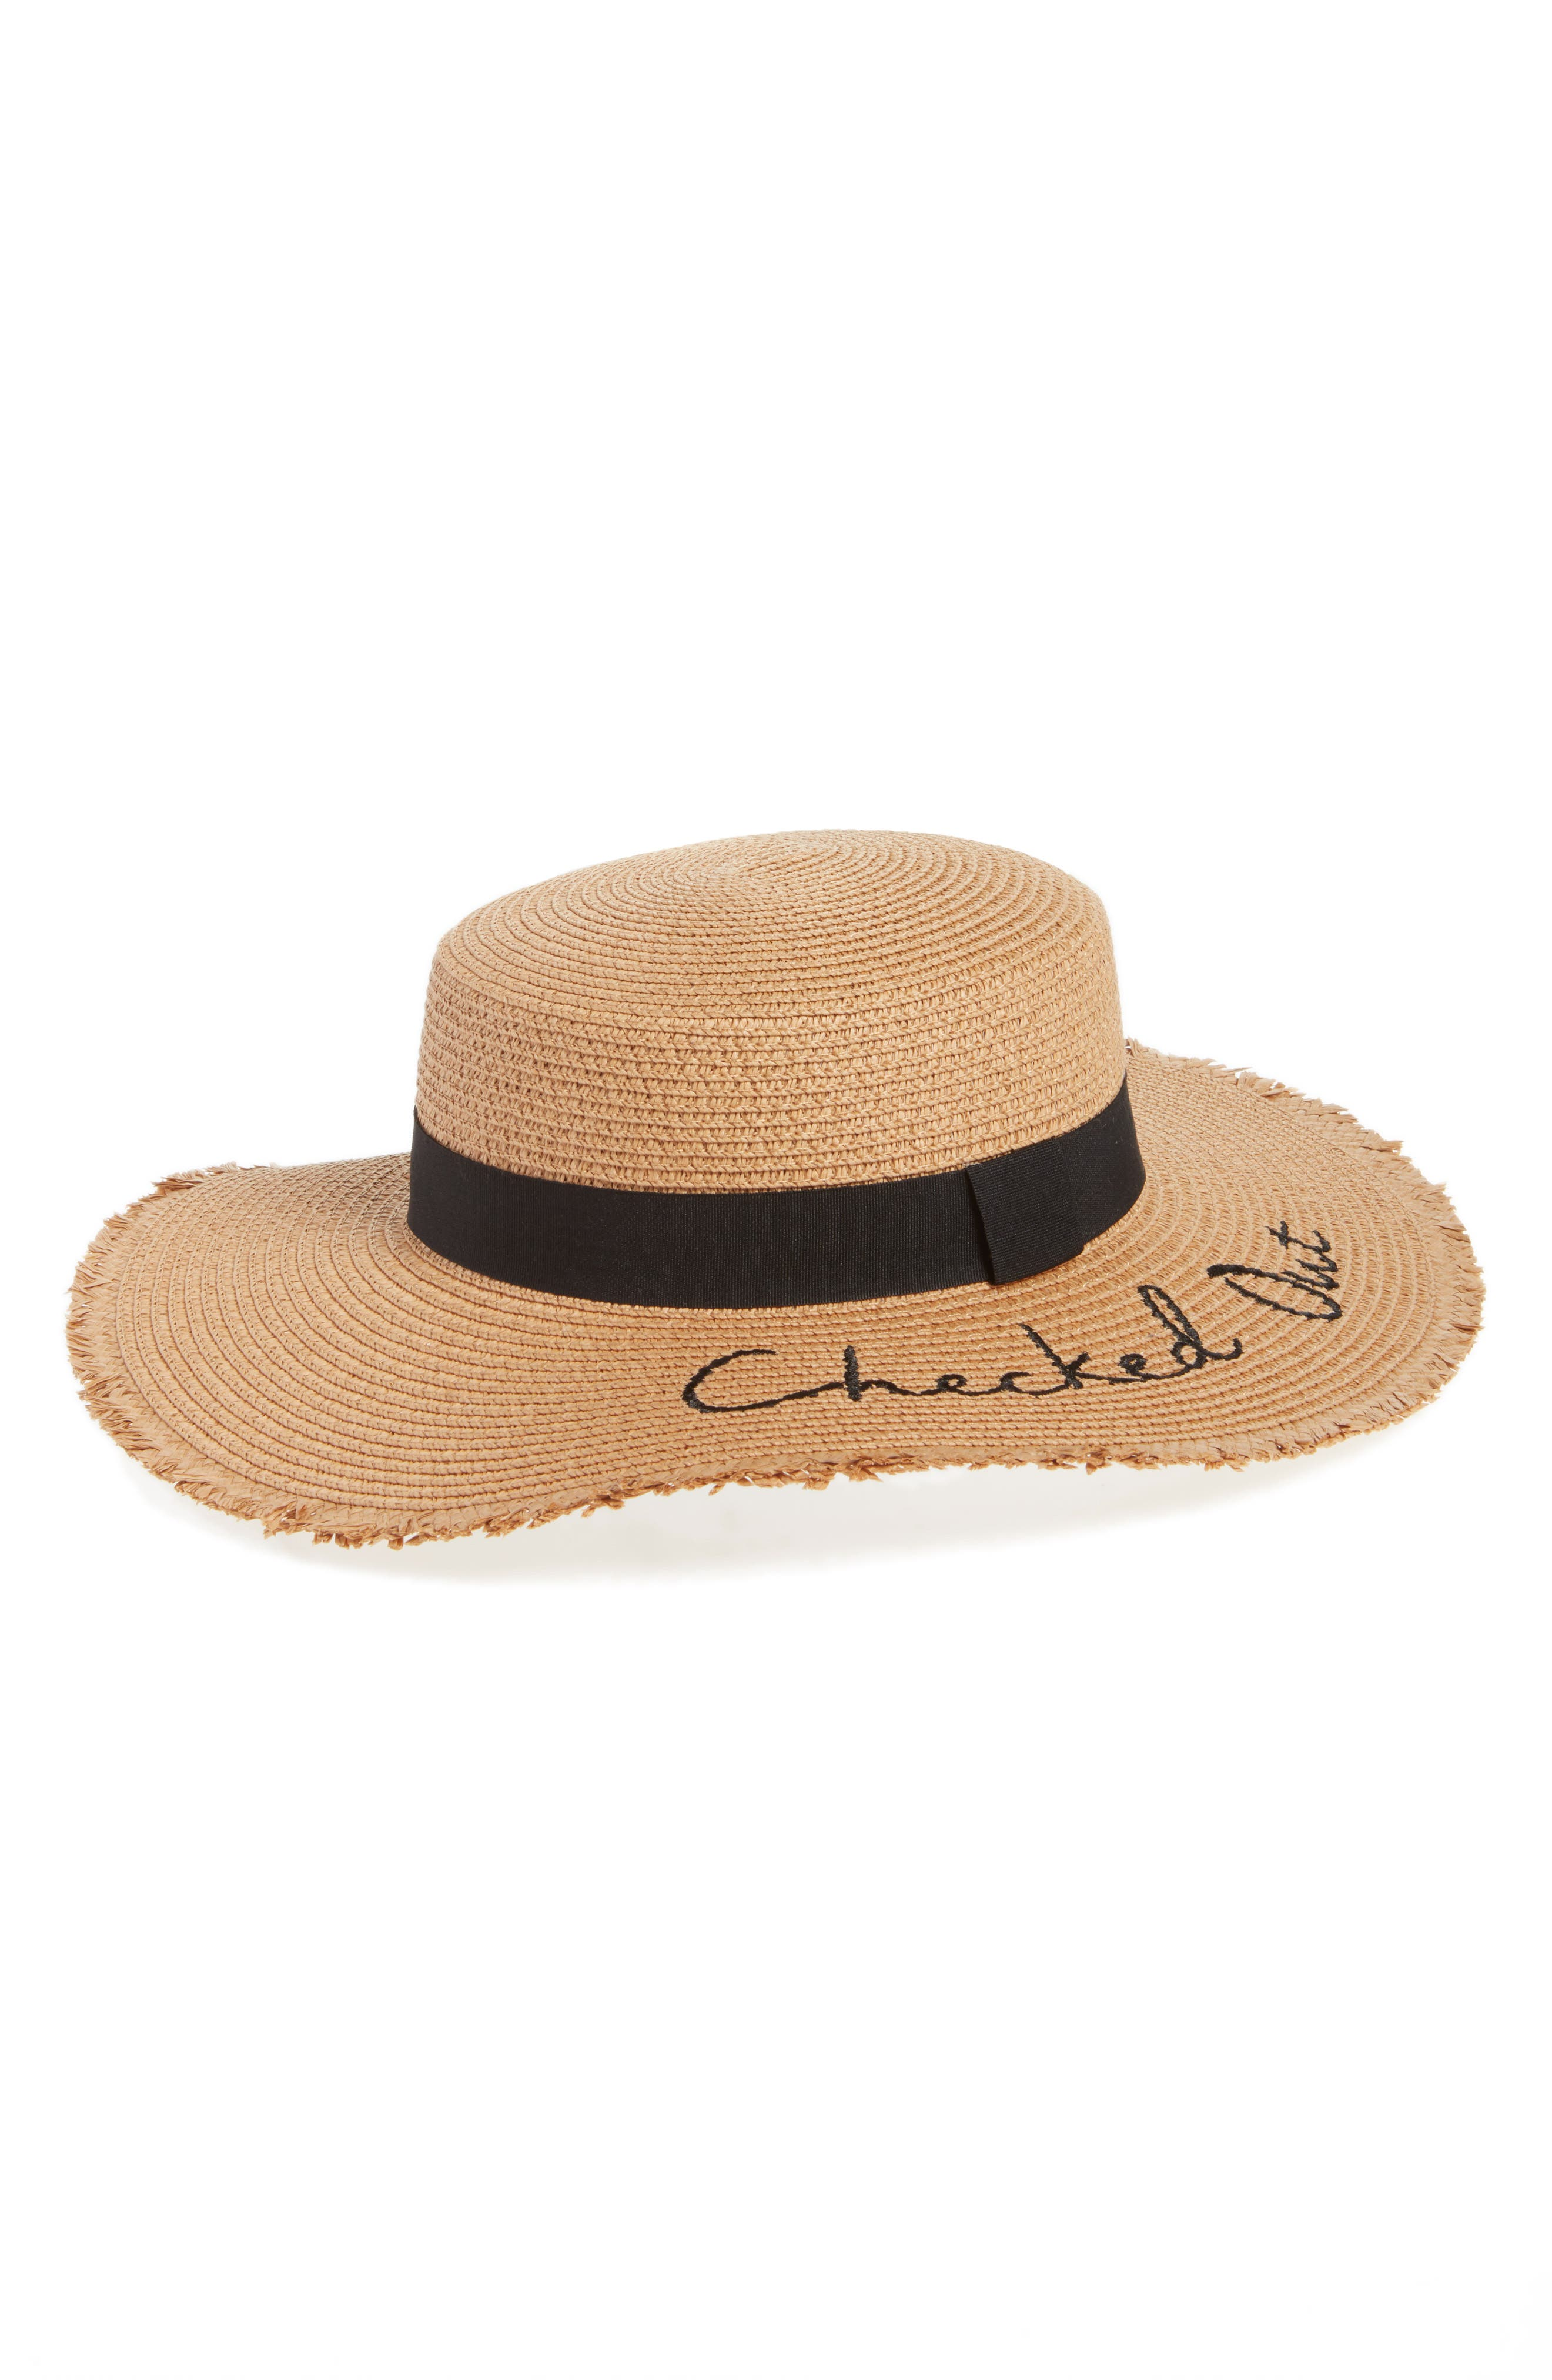 Verbiage Frayed Edge Straw Boater Hat,                             Main thumbnail 1, color,                             250